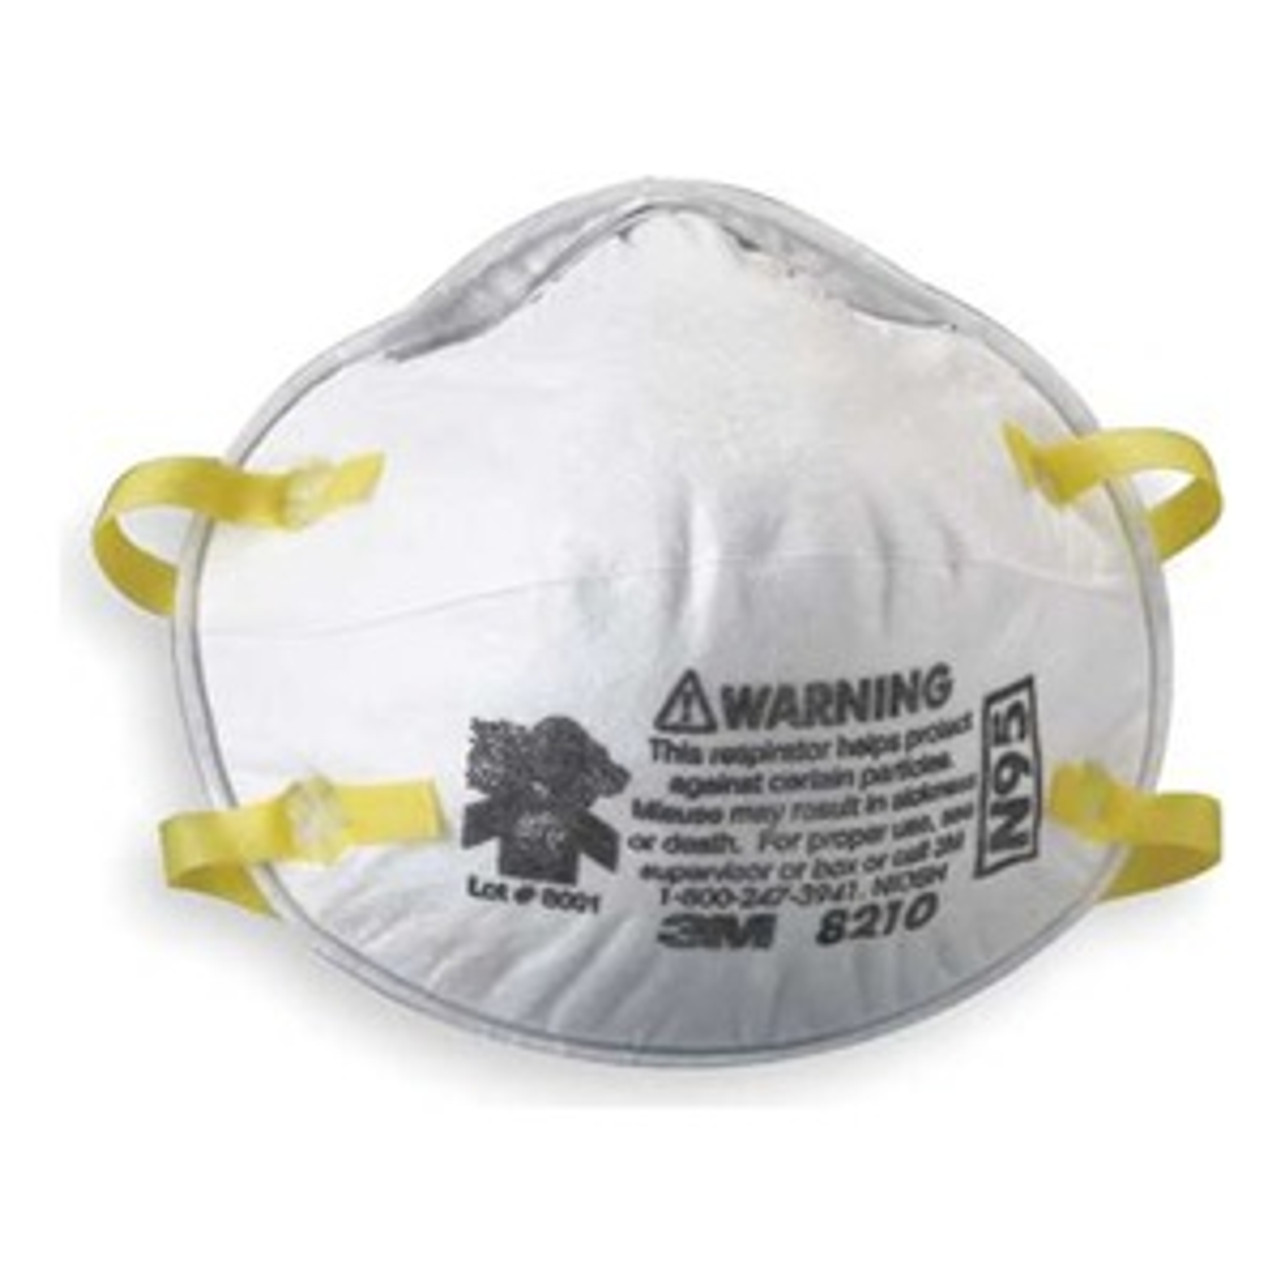 Masks N95 Safety Dust Mask 8210 Supply Particulate 3m 20 - Jendco